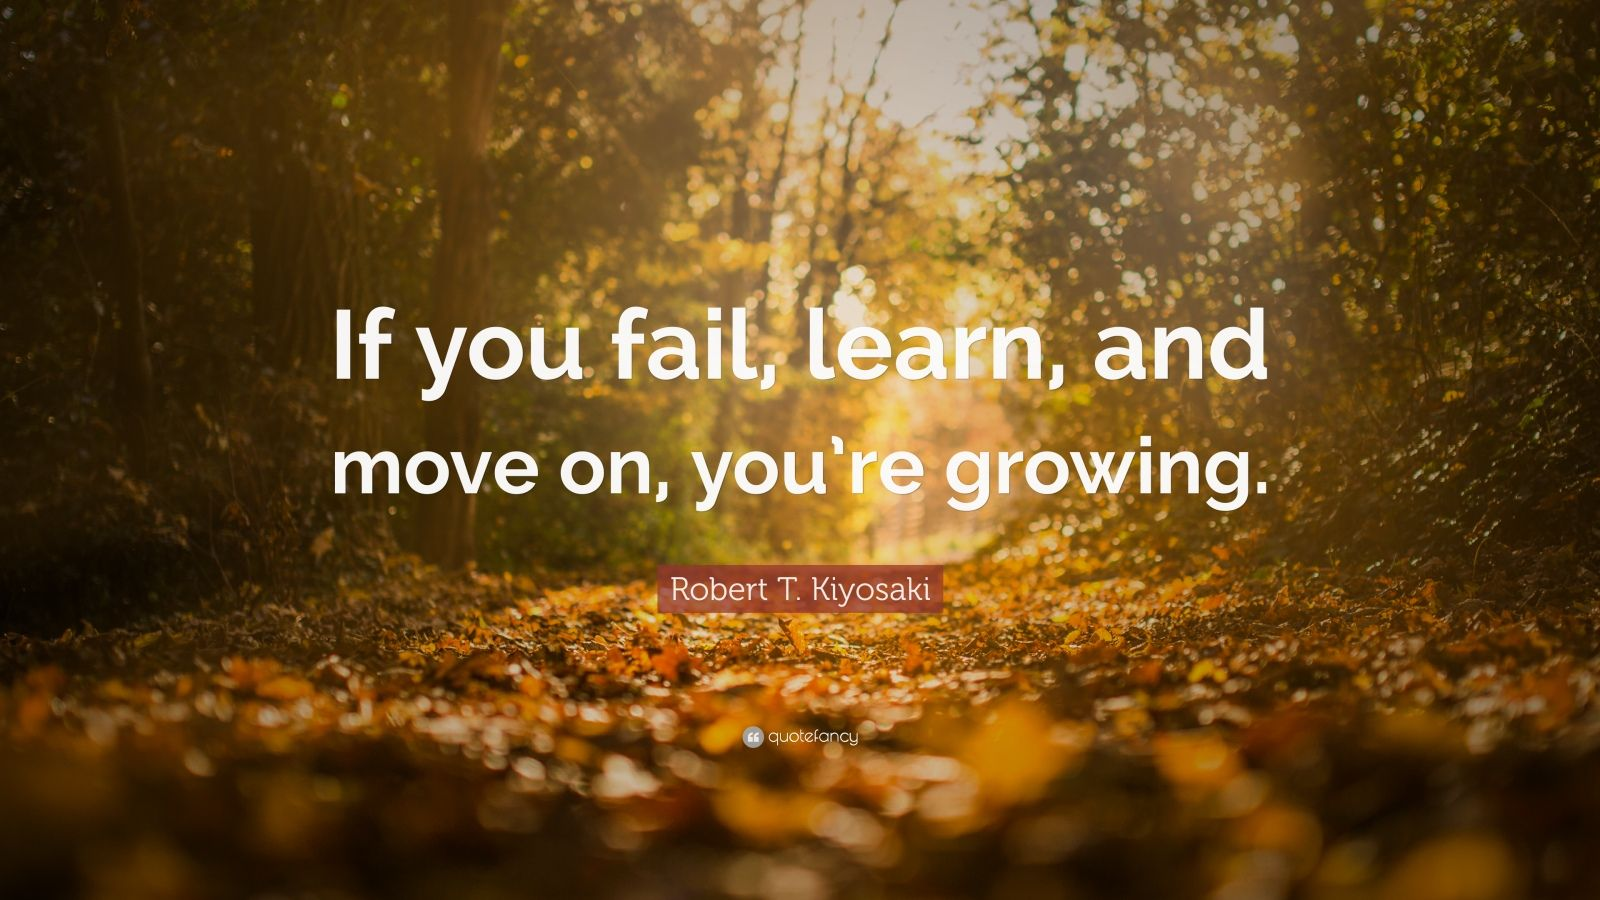 """Robert T. Kiyosaki Quote: """"If you fail, learn, and move on, you're growing."""""""